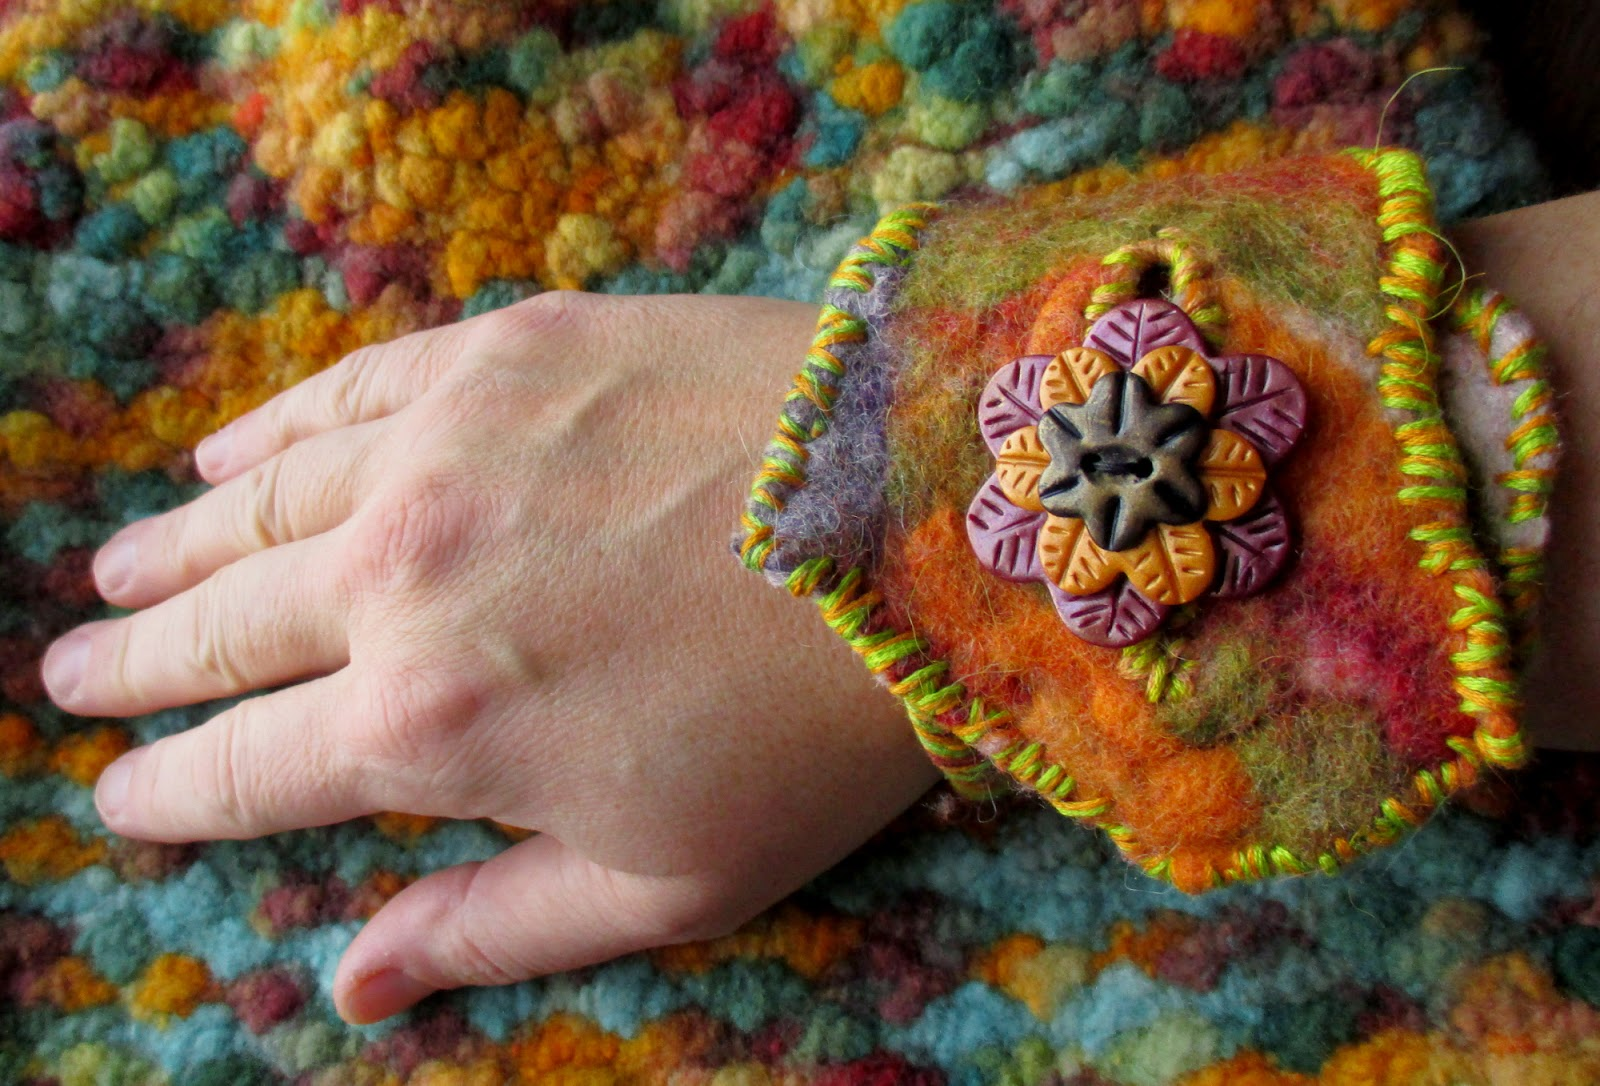 https://www.etsy.com/listing/216540345/colorful-felt-cuff-bracelet?ref=listing-shop-header-1